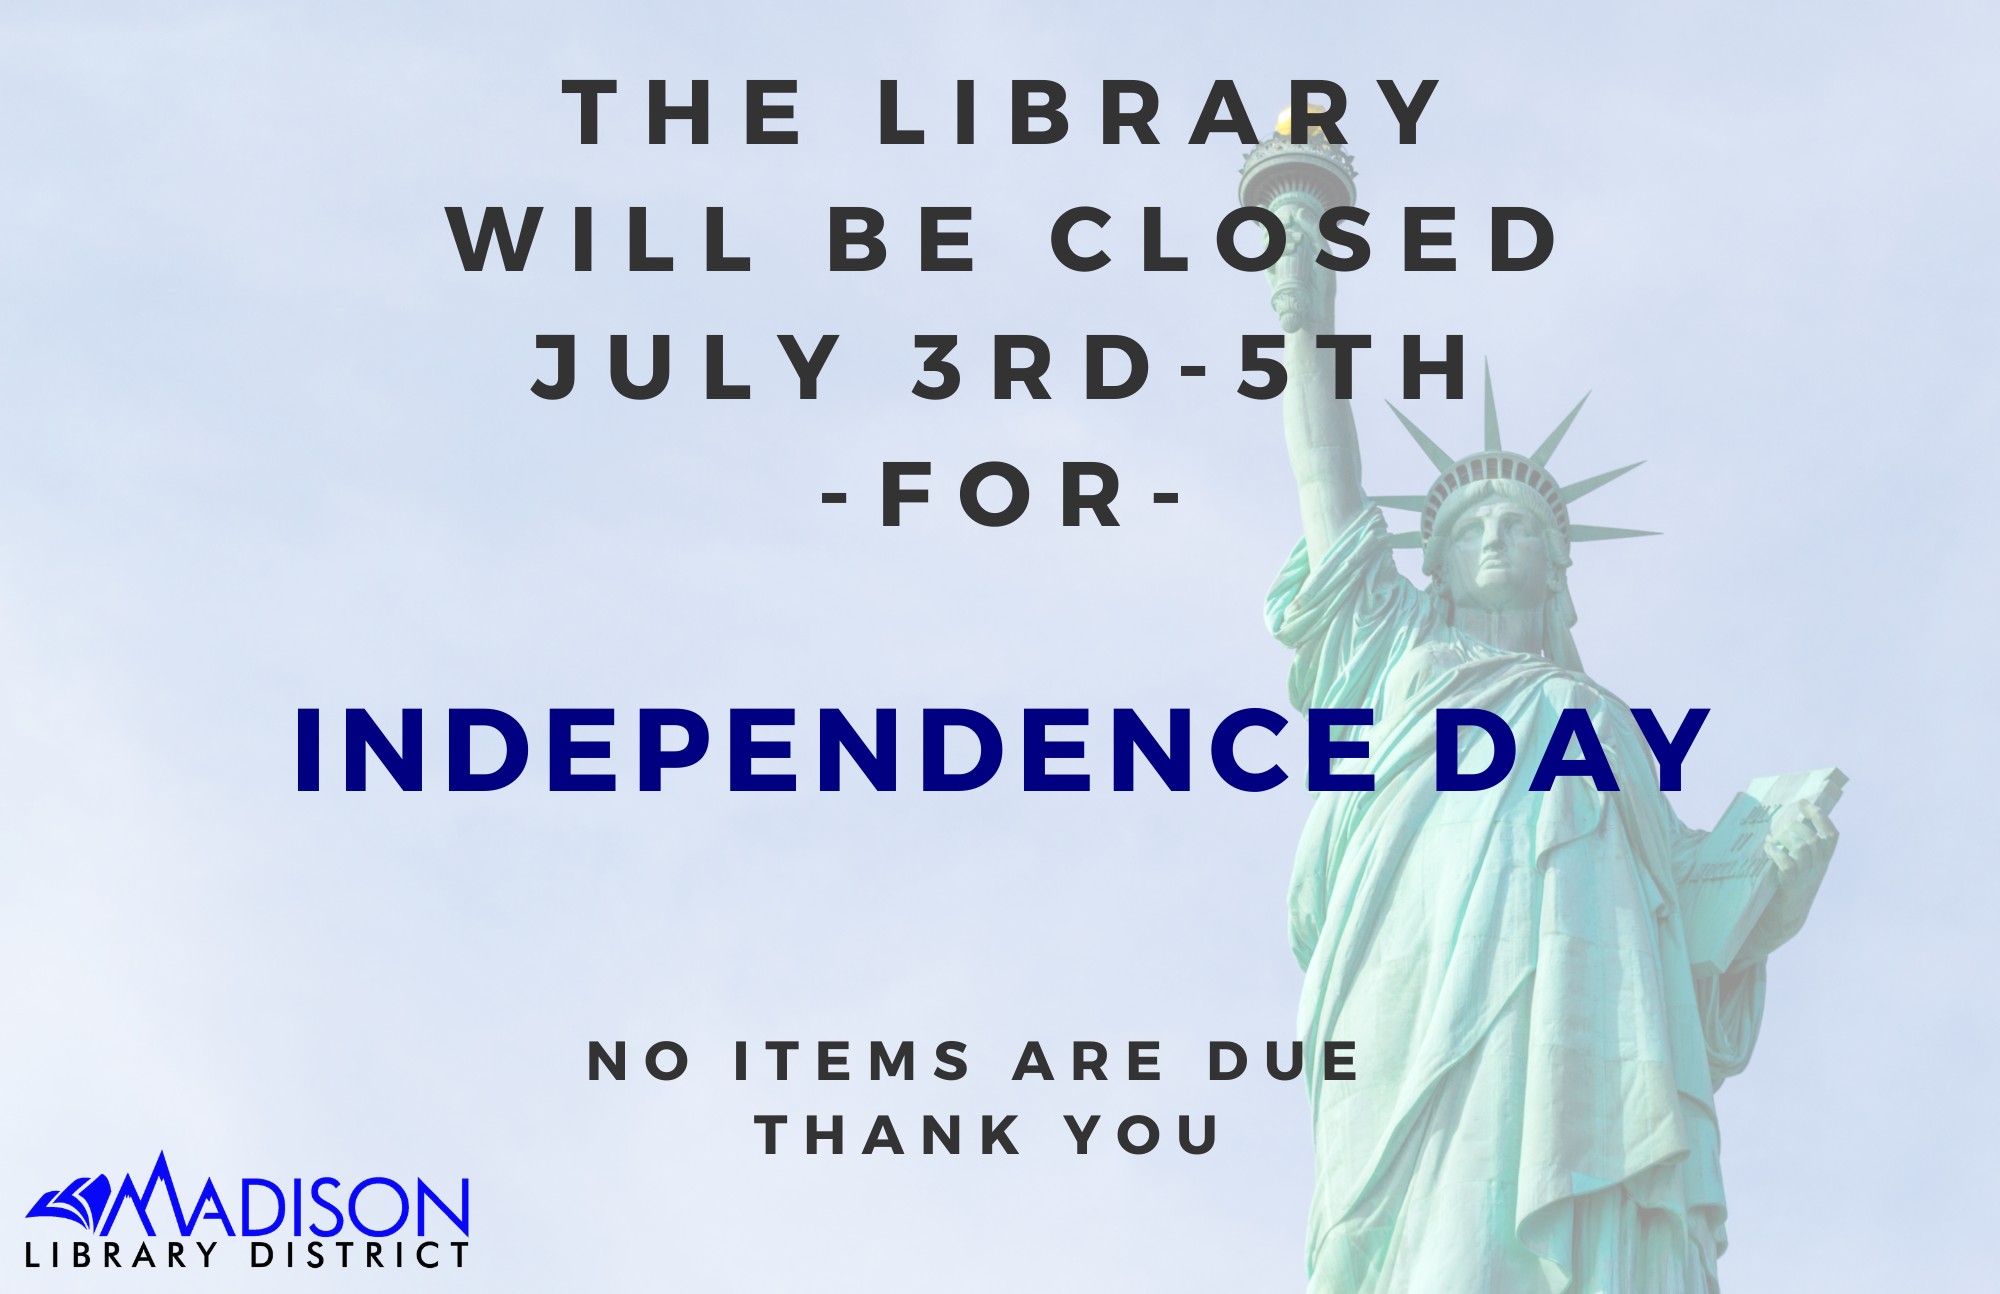 The library will be closed on Wednesday, November 11 for Veteran's Day. No items are due. Thank you.